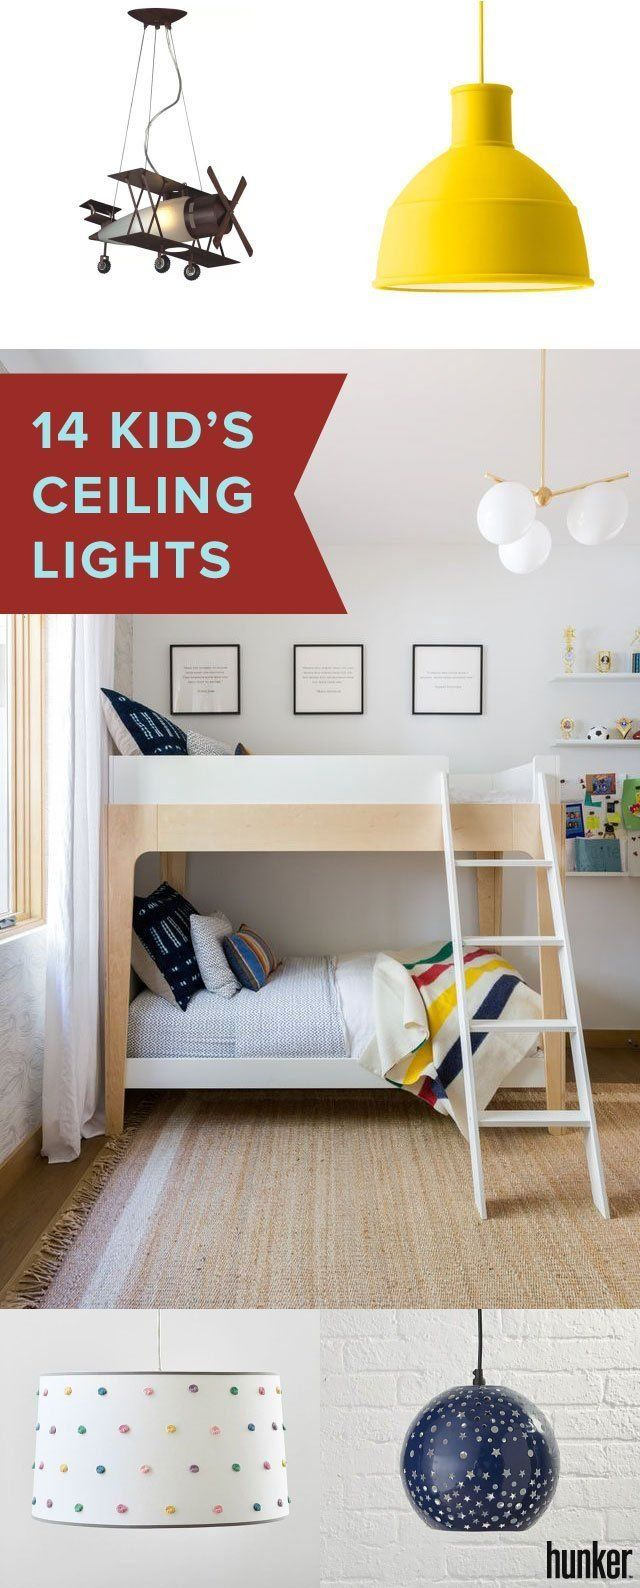 Ceiling Lights And Fixtures For The Kids Room